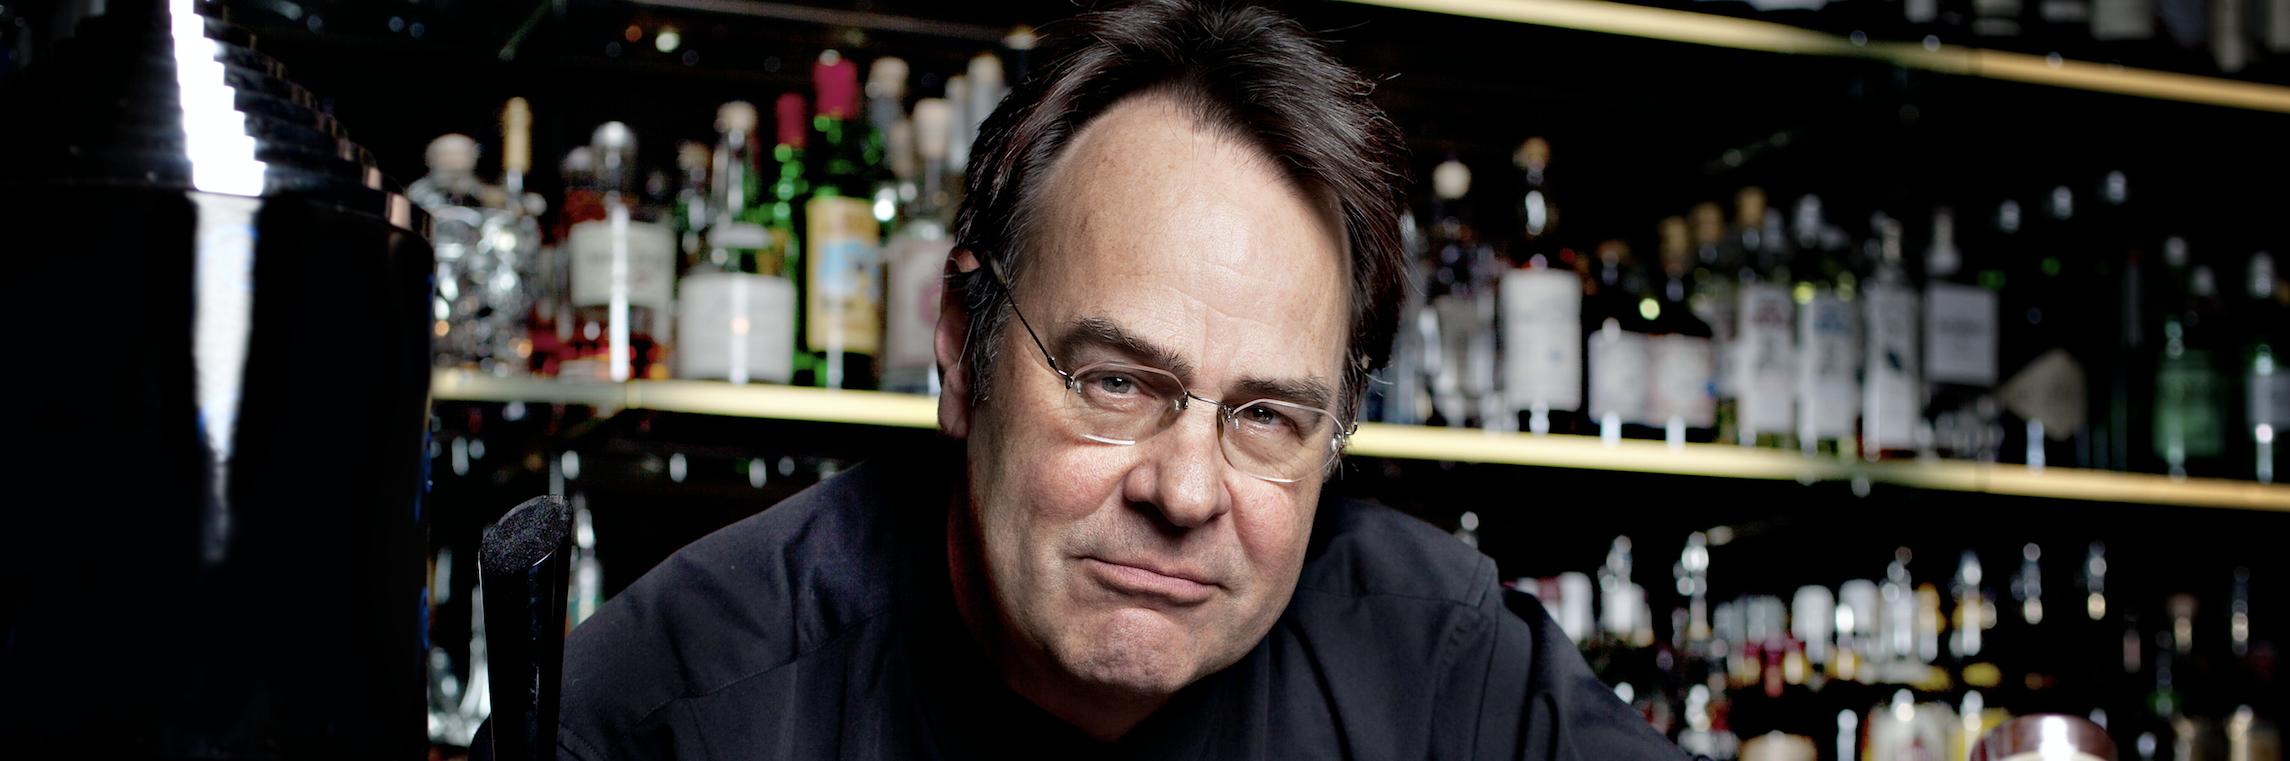 10 Questions With The Funniest Man In The Vodka Business: Dan Aykroyd photo